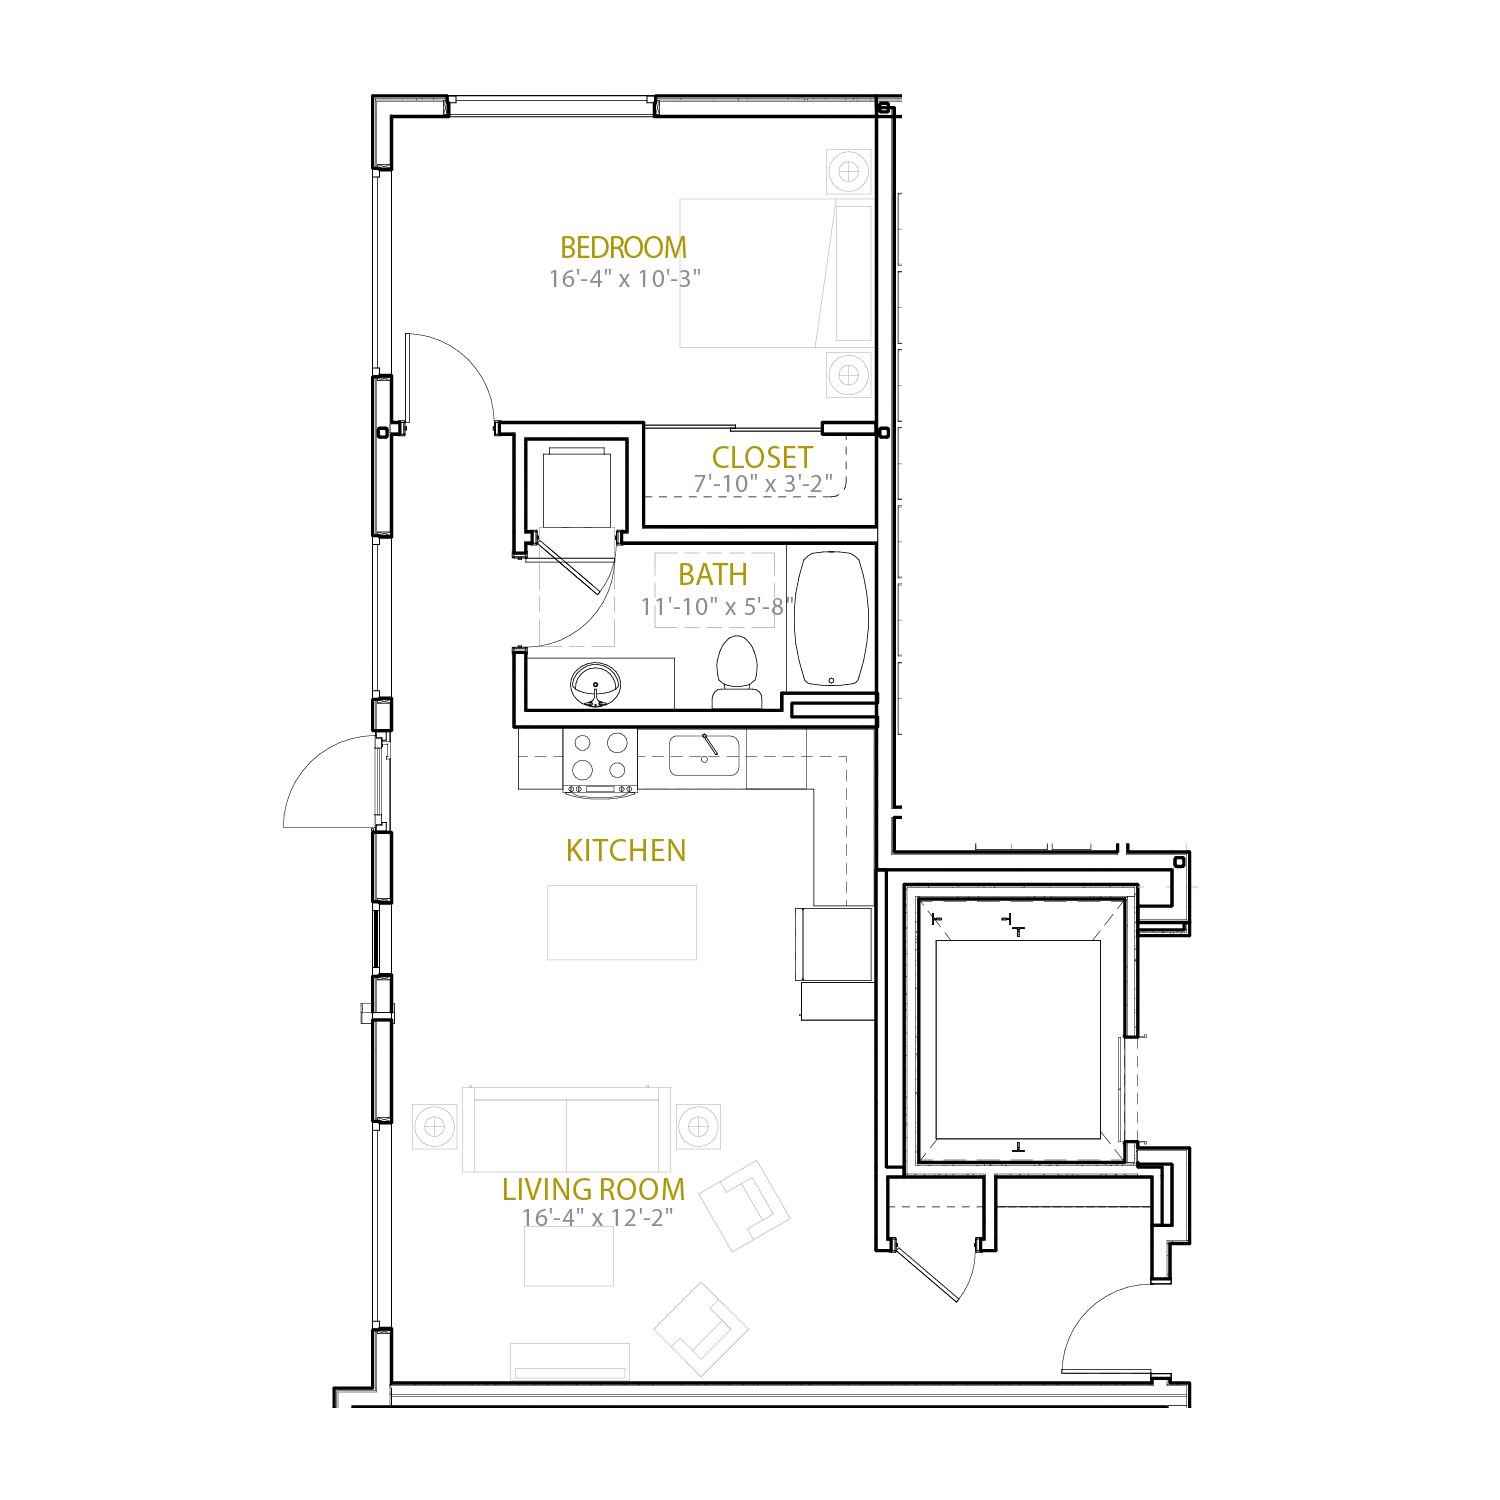 B Five floor plan diagram. One bedroom, one bathroom, and an open kitchen and living area.